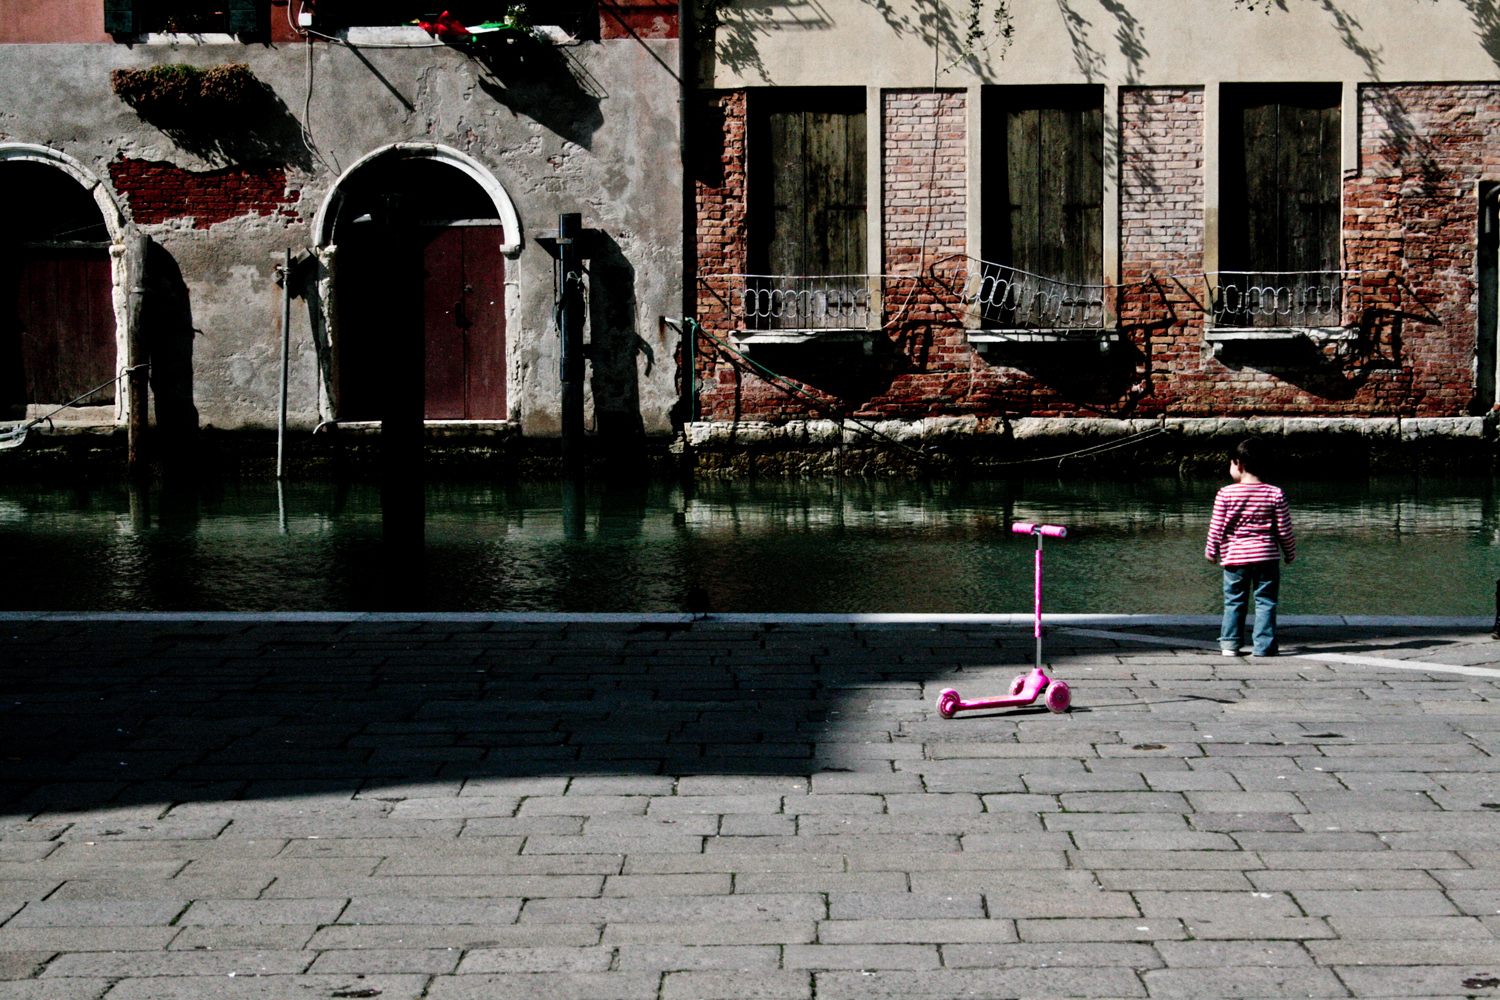 Lost in the World (Venice, Italy)